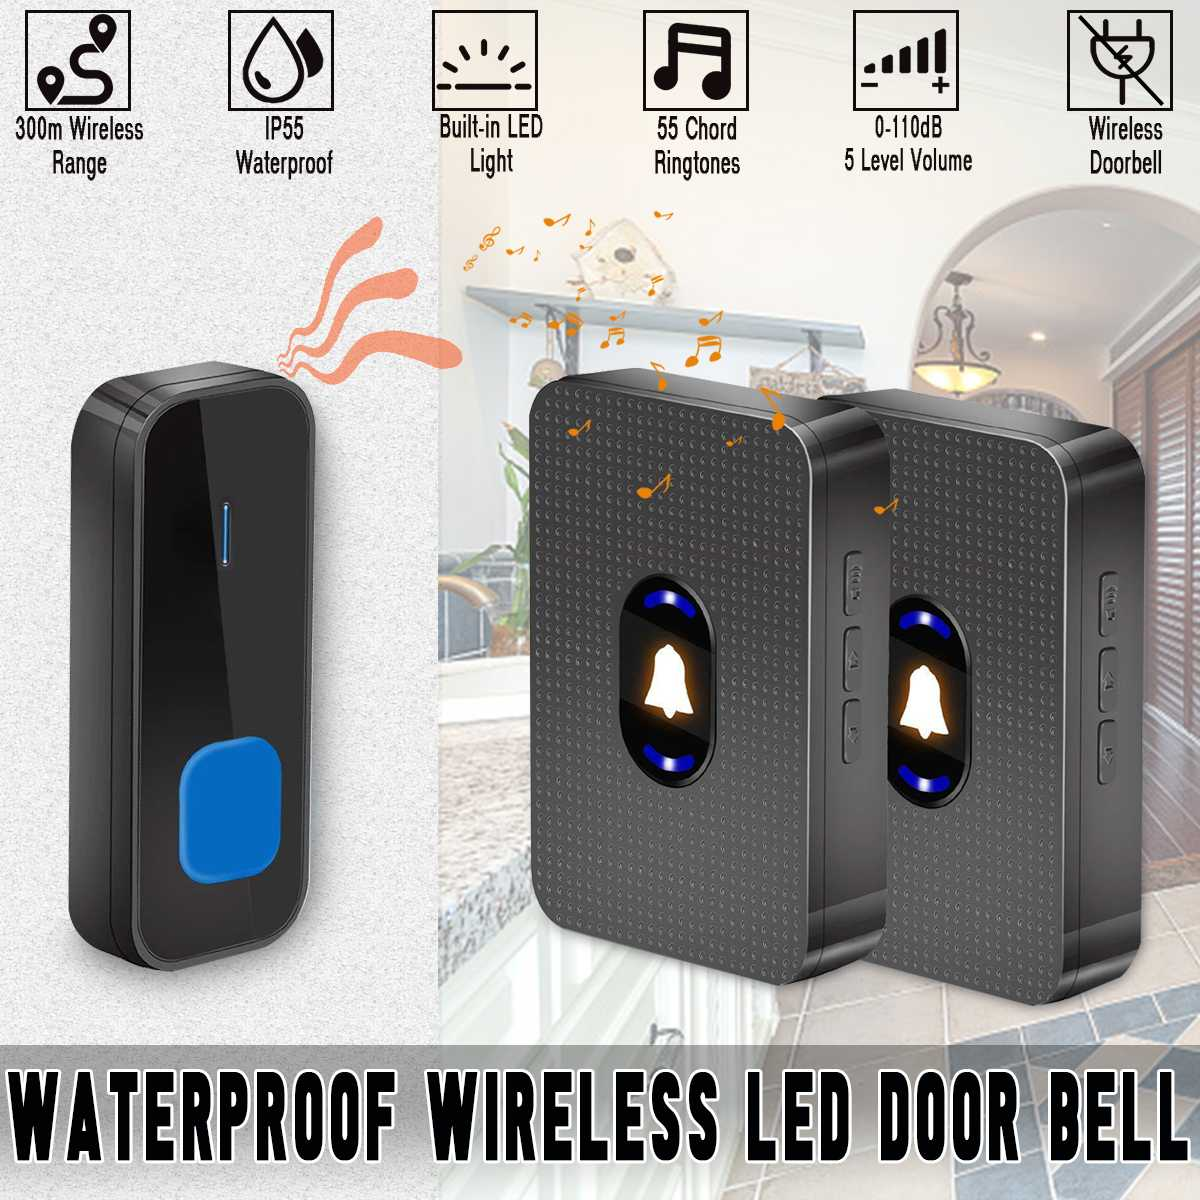 Wireless LED  IP55 Waterproof Door Bell Cordless 1000ft/300M Range 55 Chime Doorbell UK/EU/US Plug 110-260V For Villas Hotels